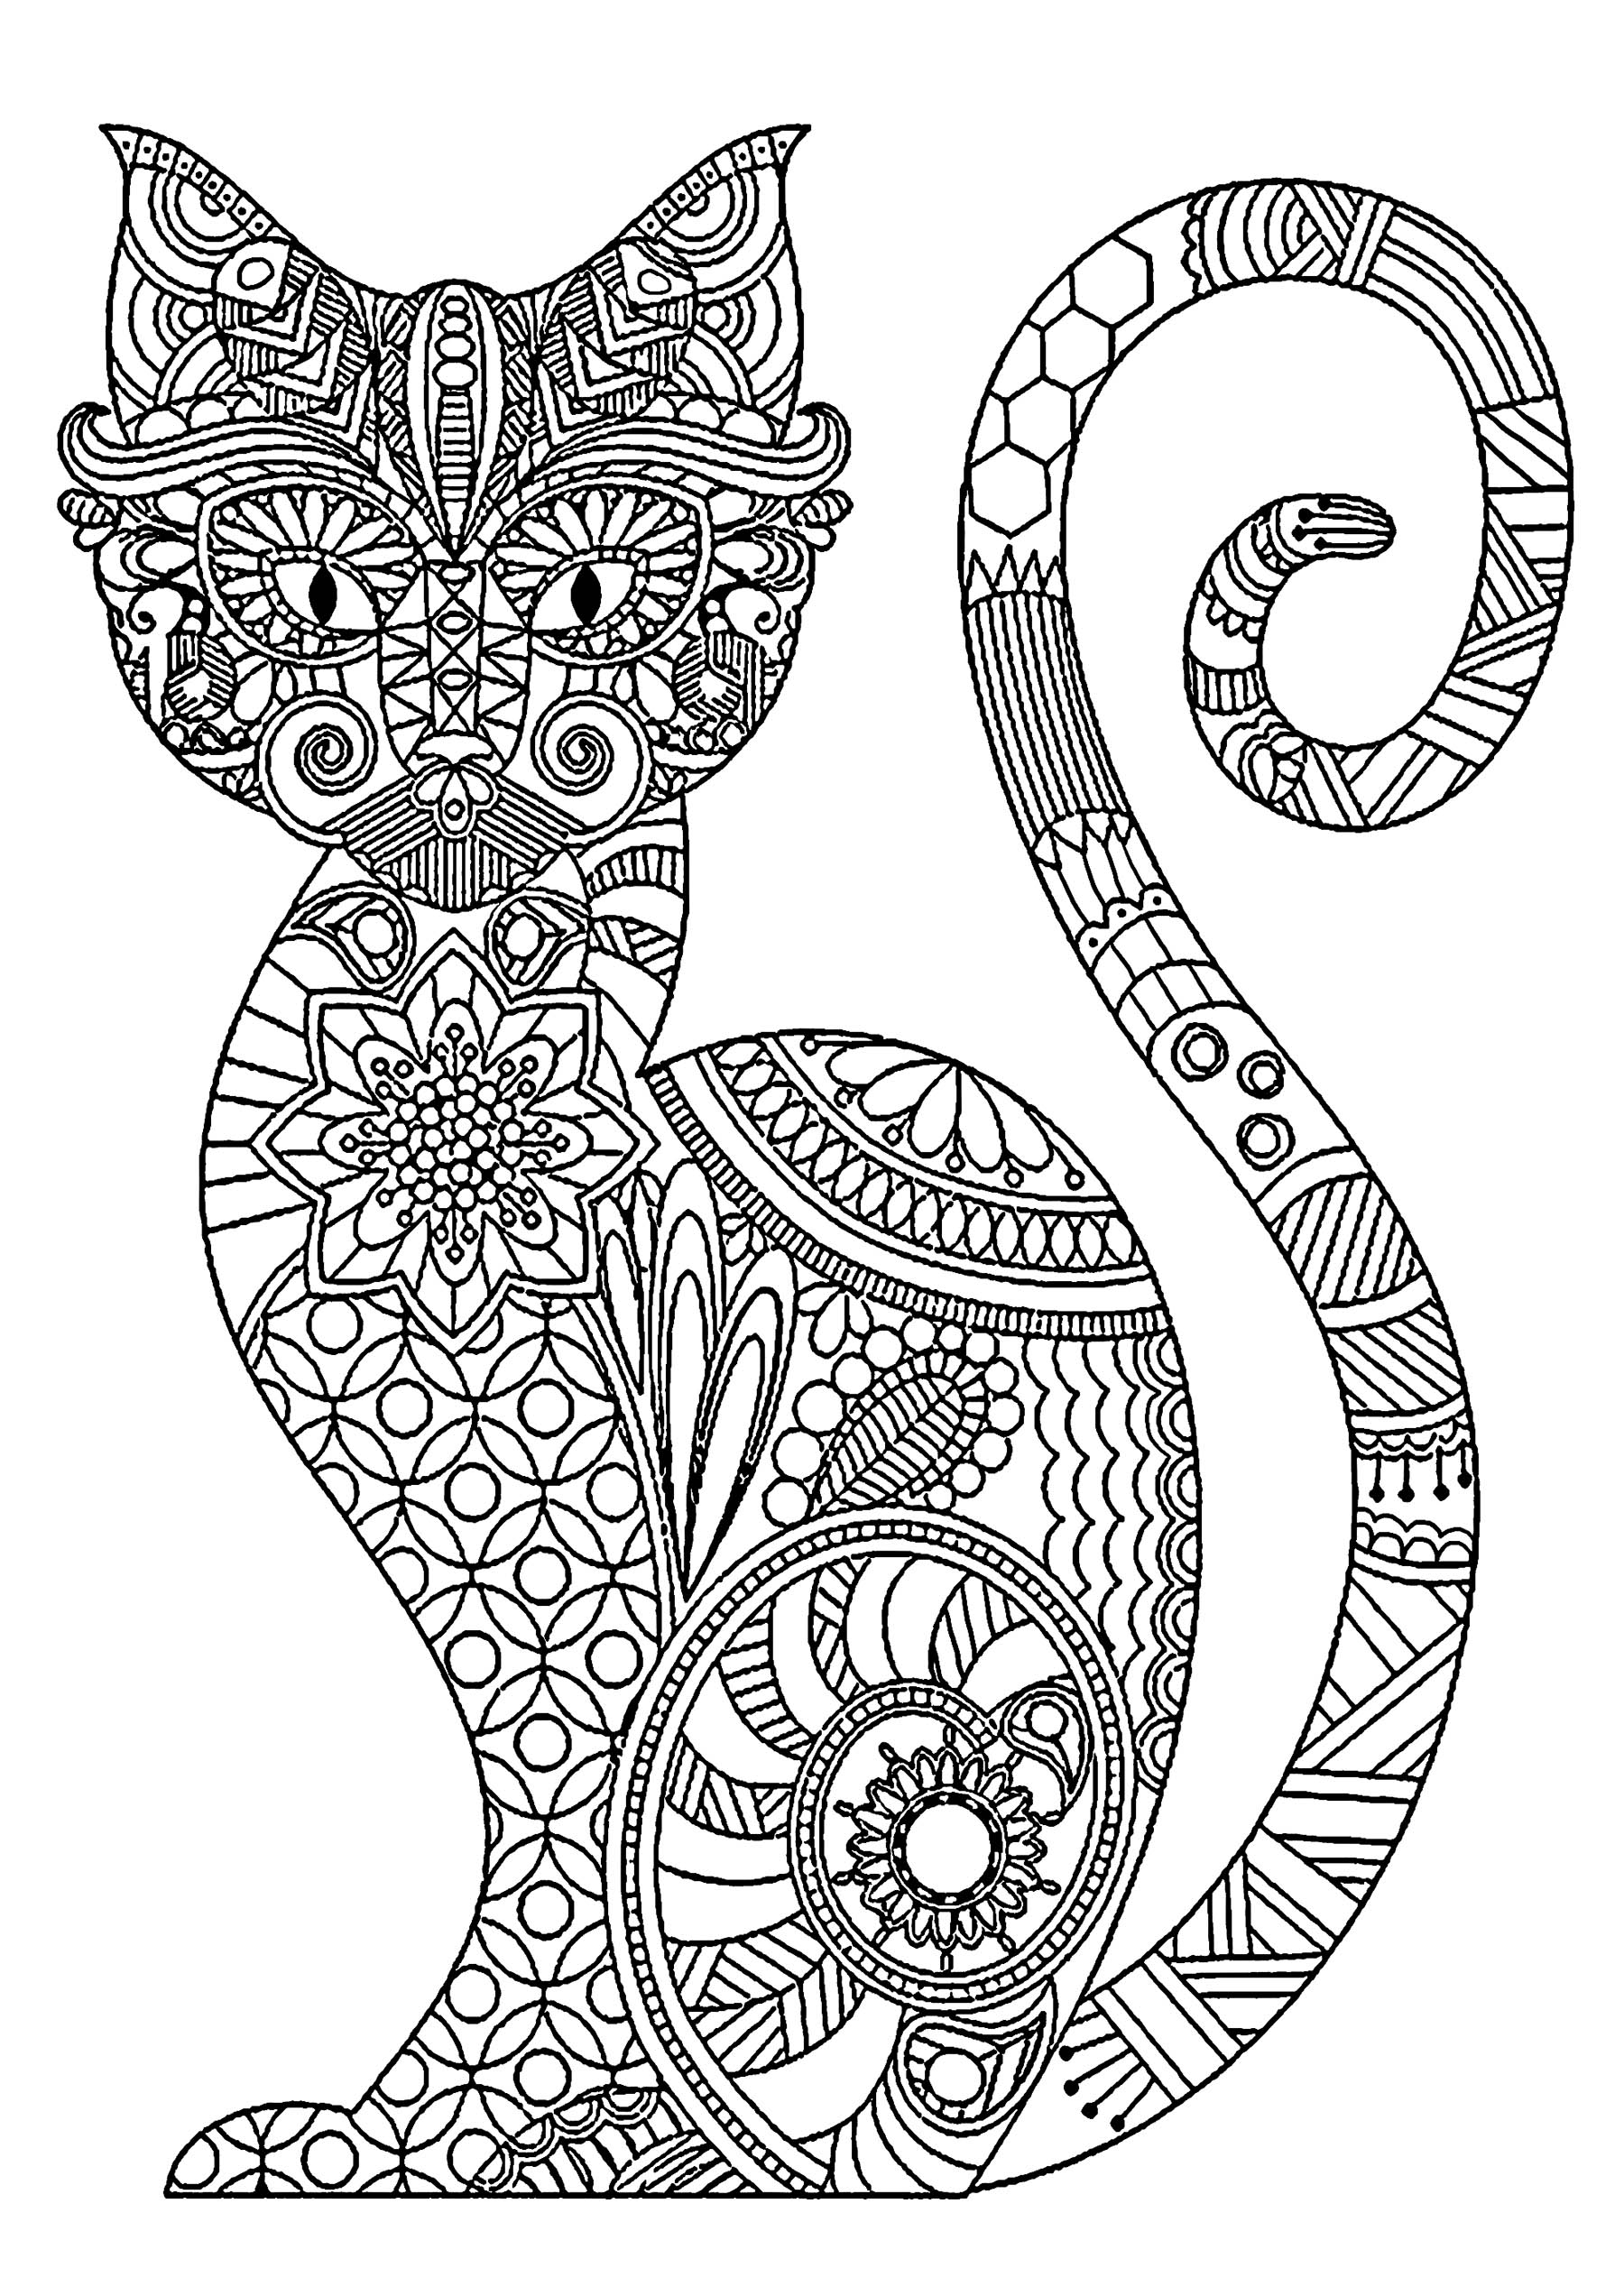 Cat free to color for kids : Cat with patterns - Cats Kids ...